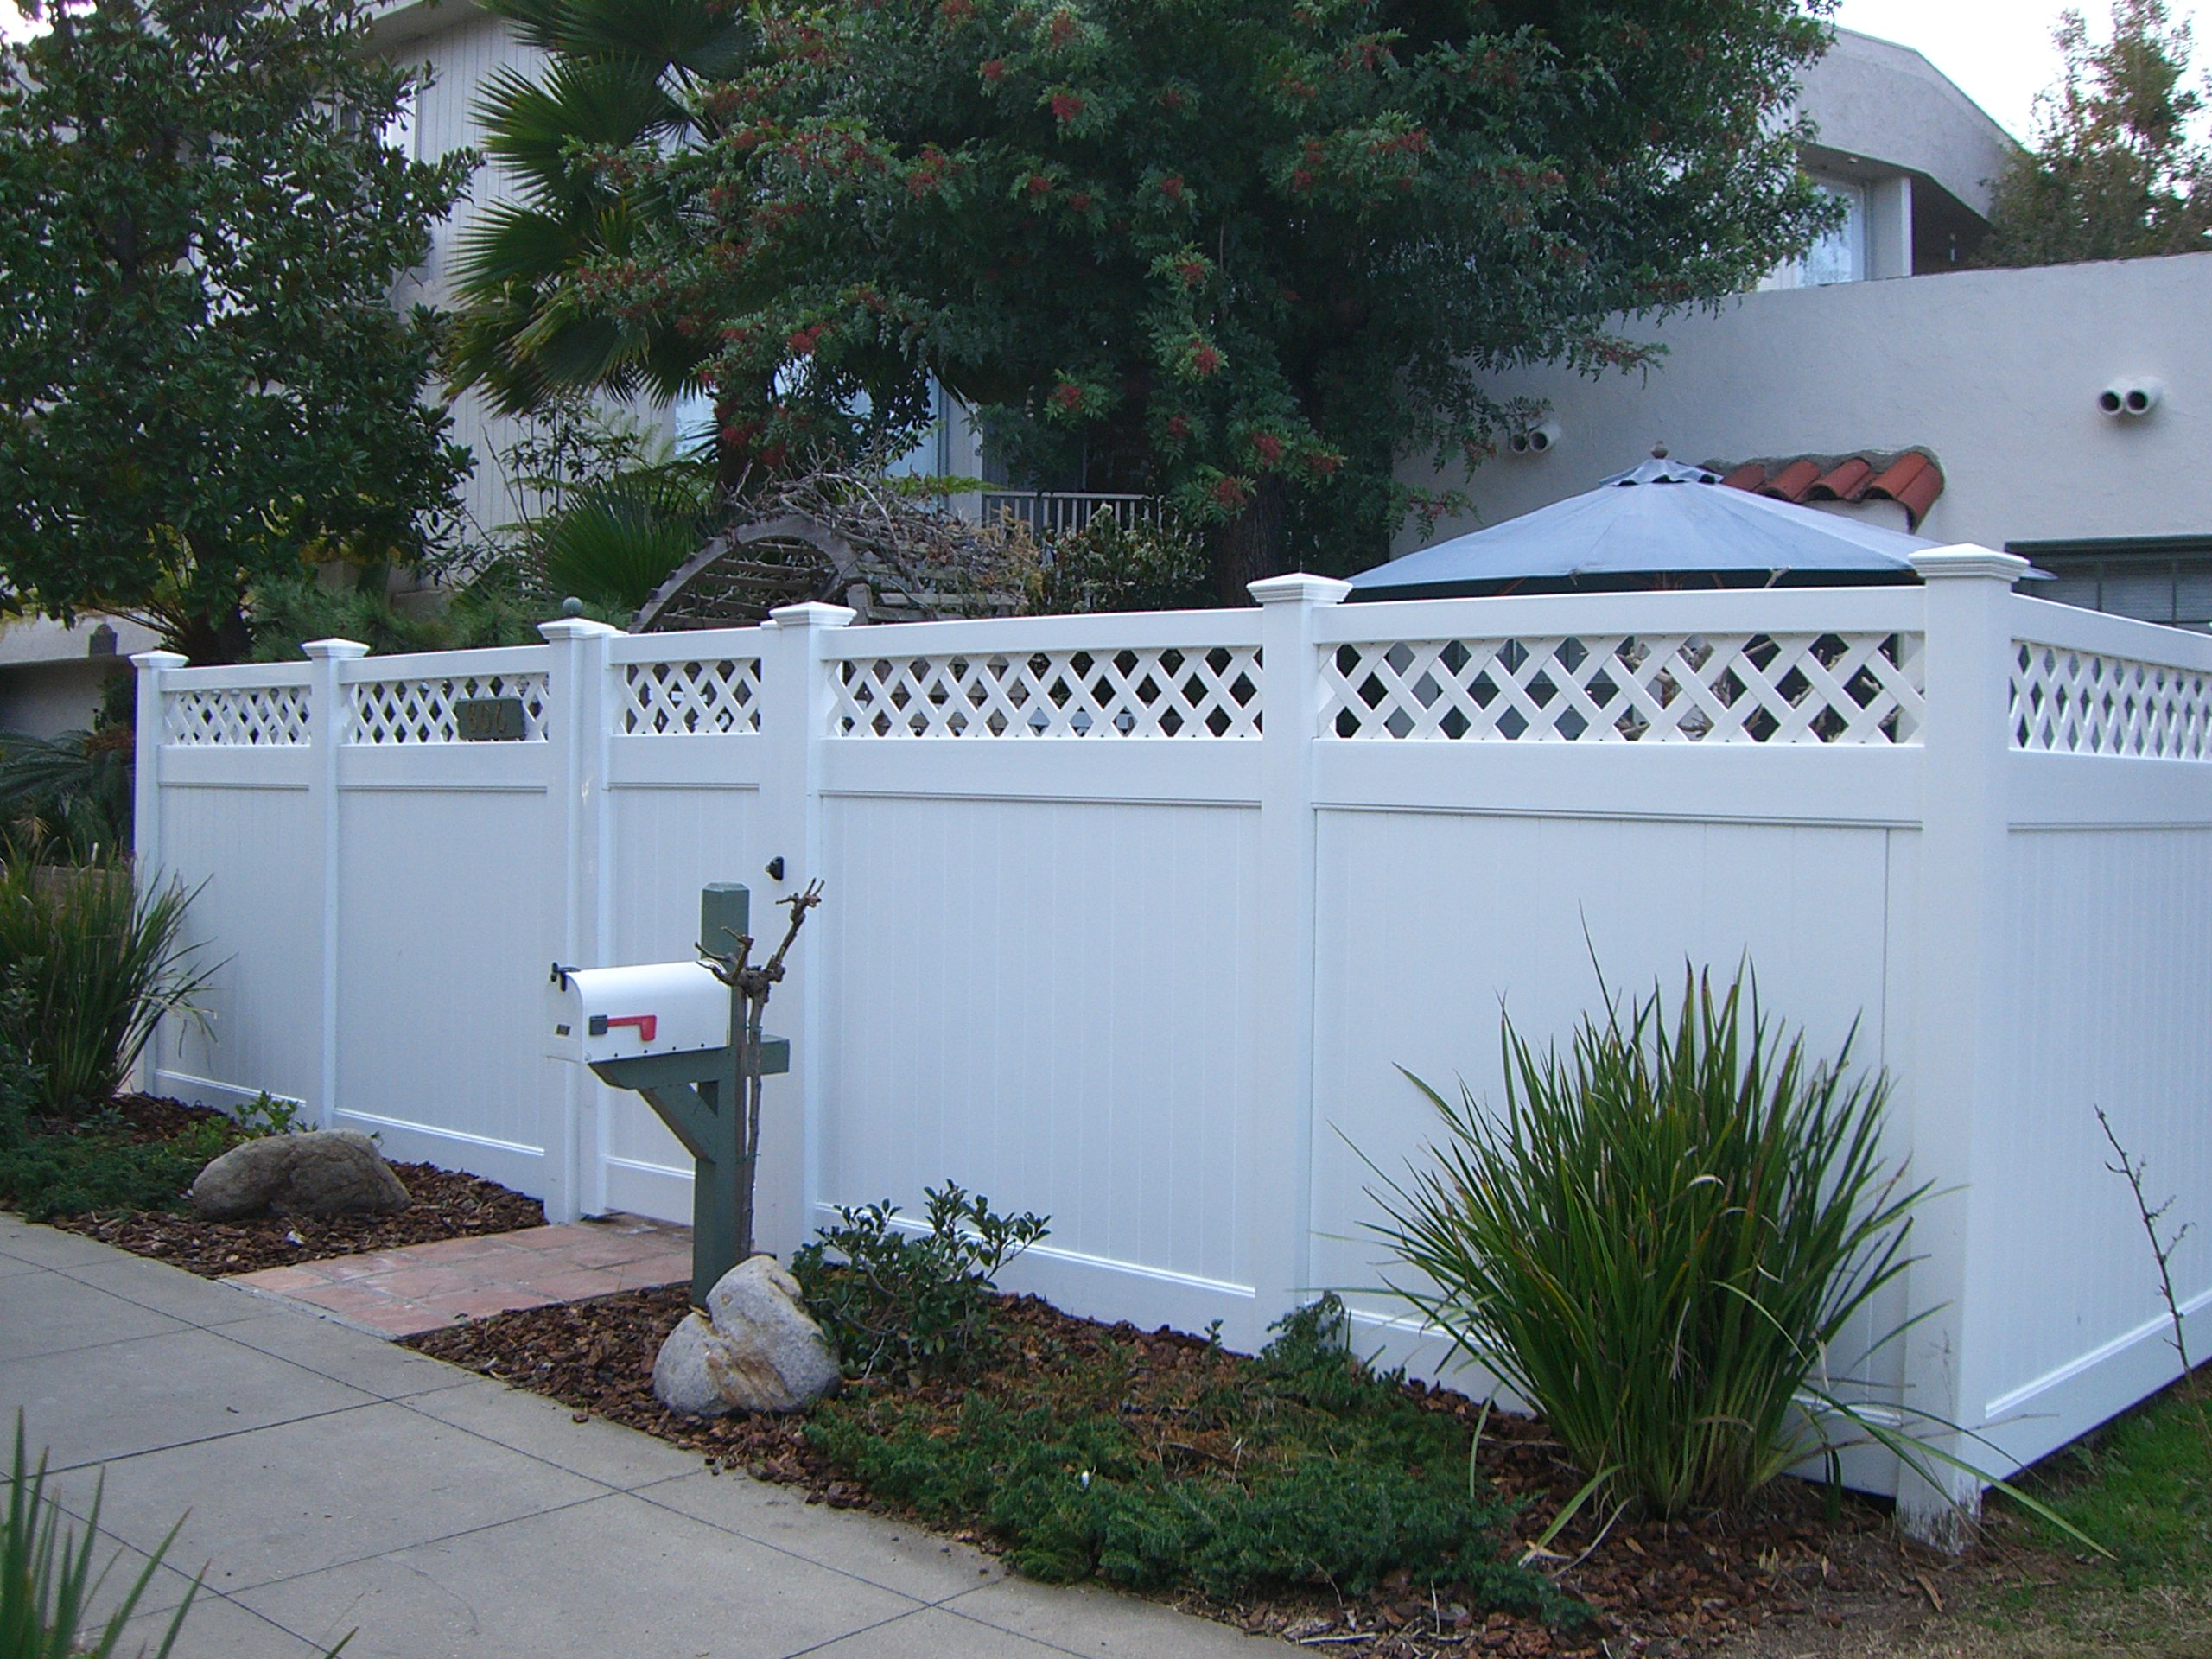 6' Vinyl Fence With Lattice